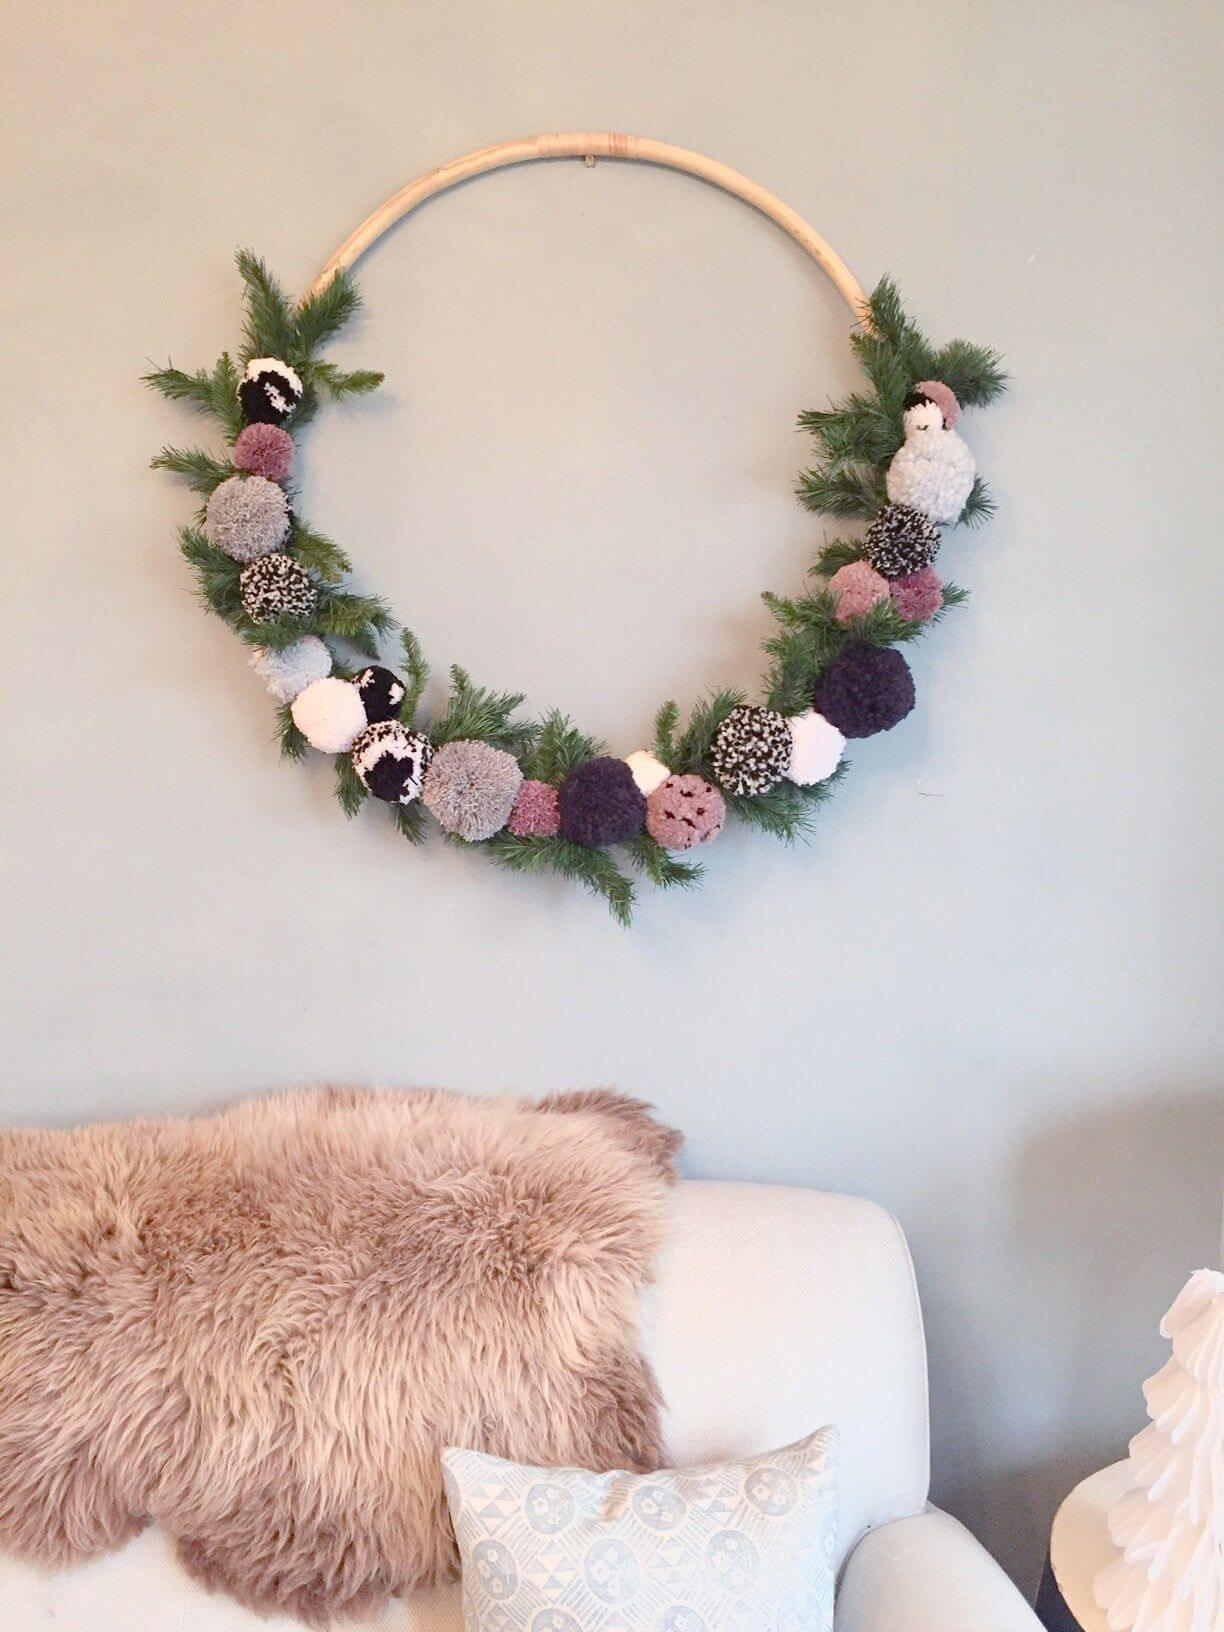 Round Floral Wall Hanging with Greenery